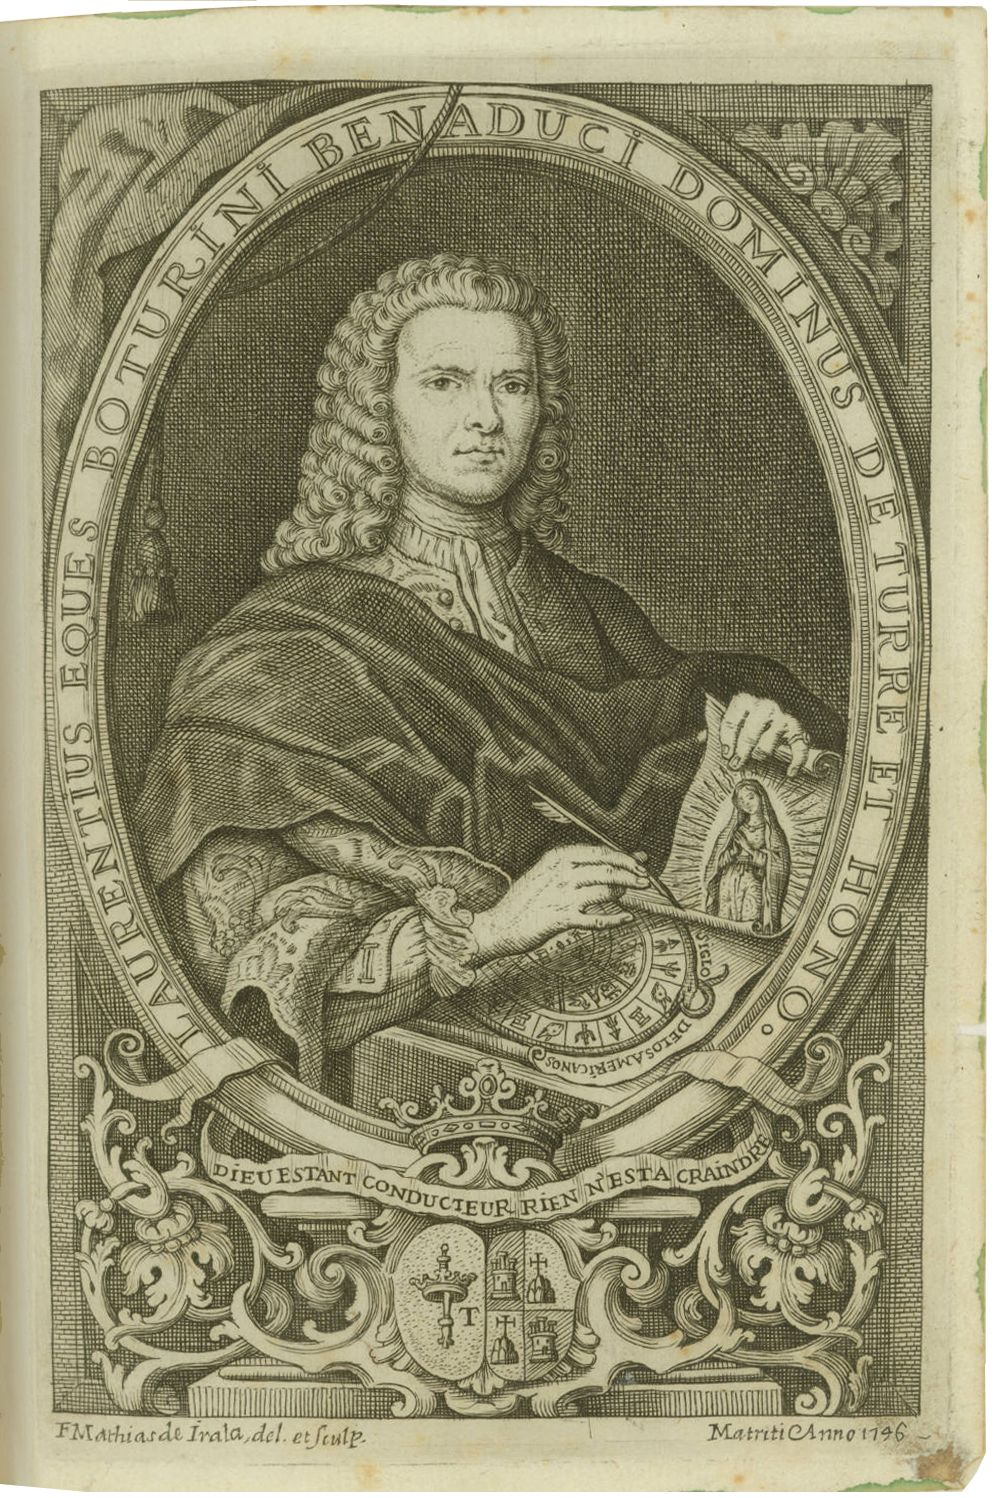 FIGURE 5. Engraving of Lorenzo Boturini Benaducci, published in his 1746 _Idea de una nueva historia general de la Am�rica Septentrionale_. Image courtesy of the John Carter Brown Library, Providence, RI.